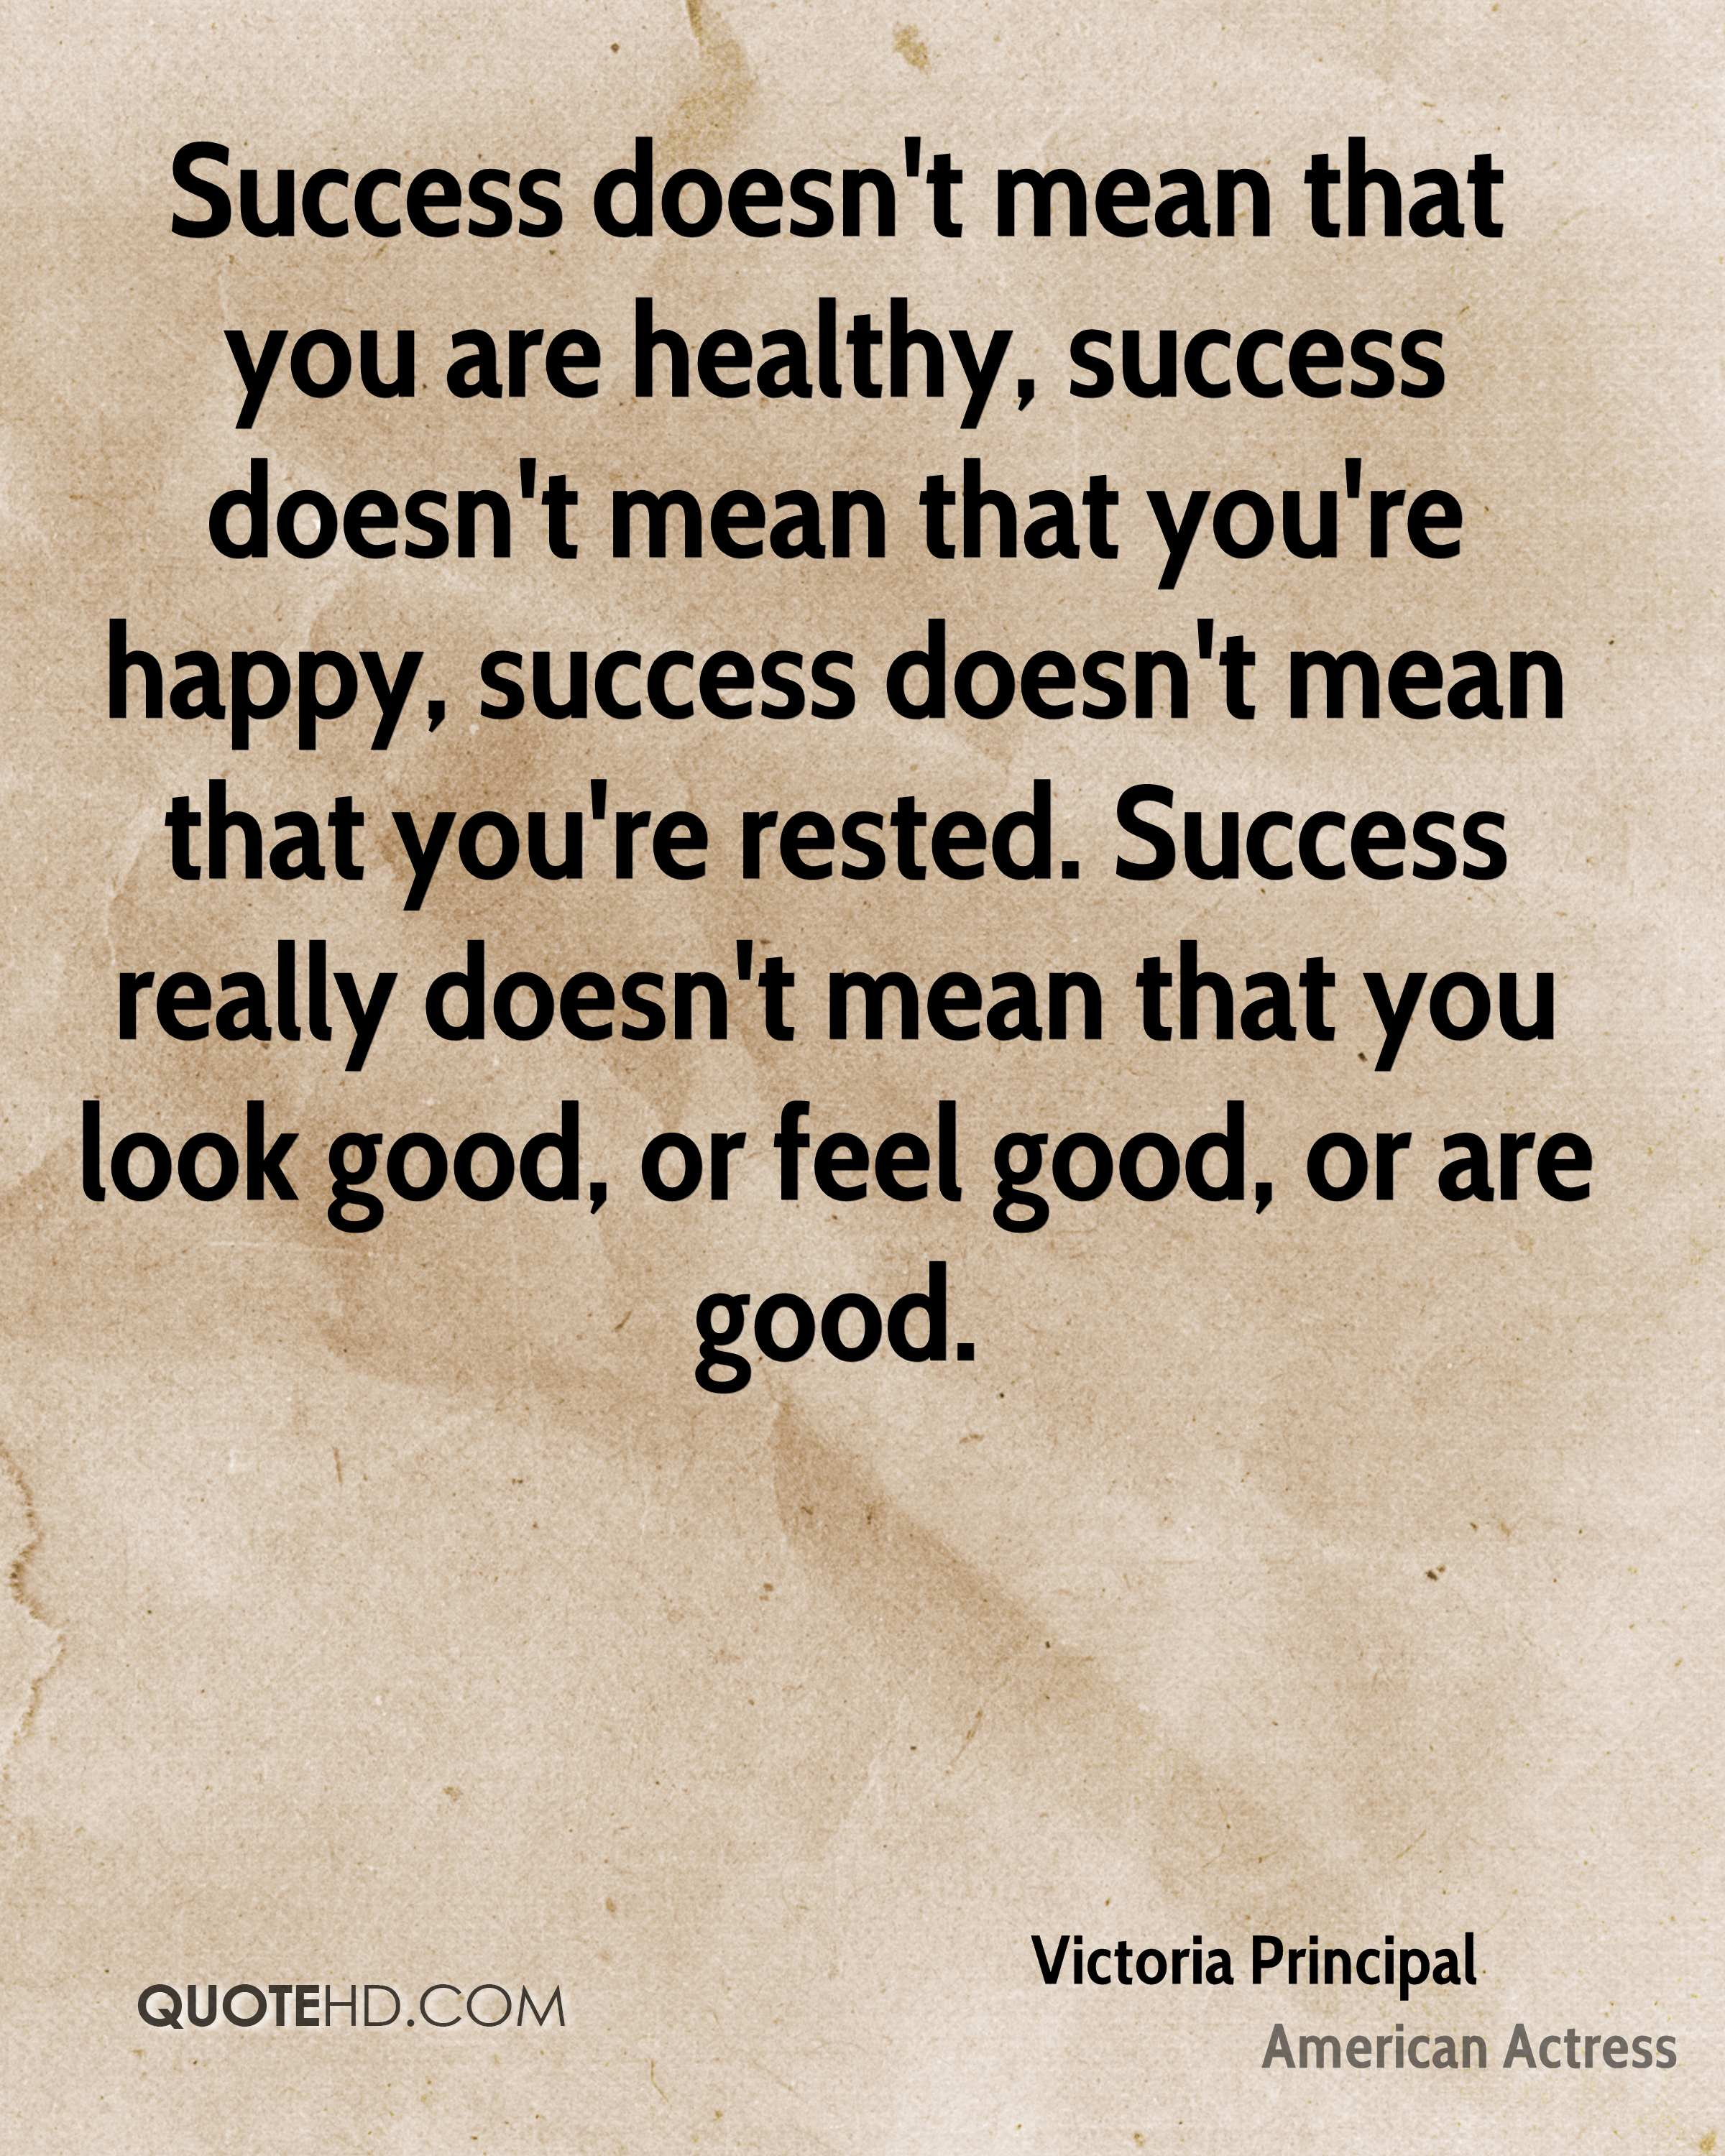 Success doesn't mean that you are healthy, success doesn't mean that you're happy, success doesn't mean that you're rested. Success really doesn't mean that you look good, or feel good, or are good.